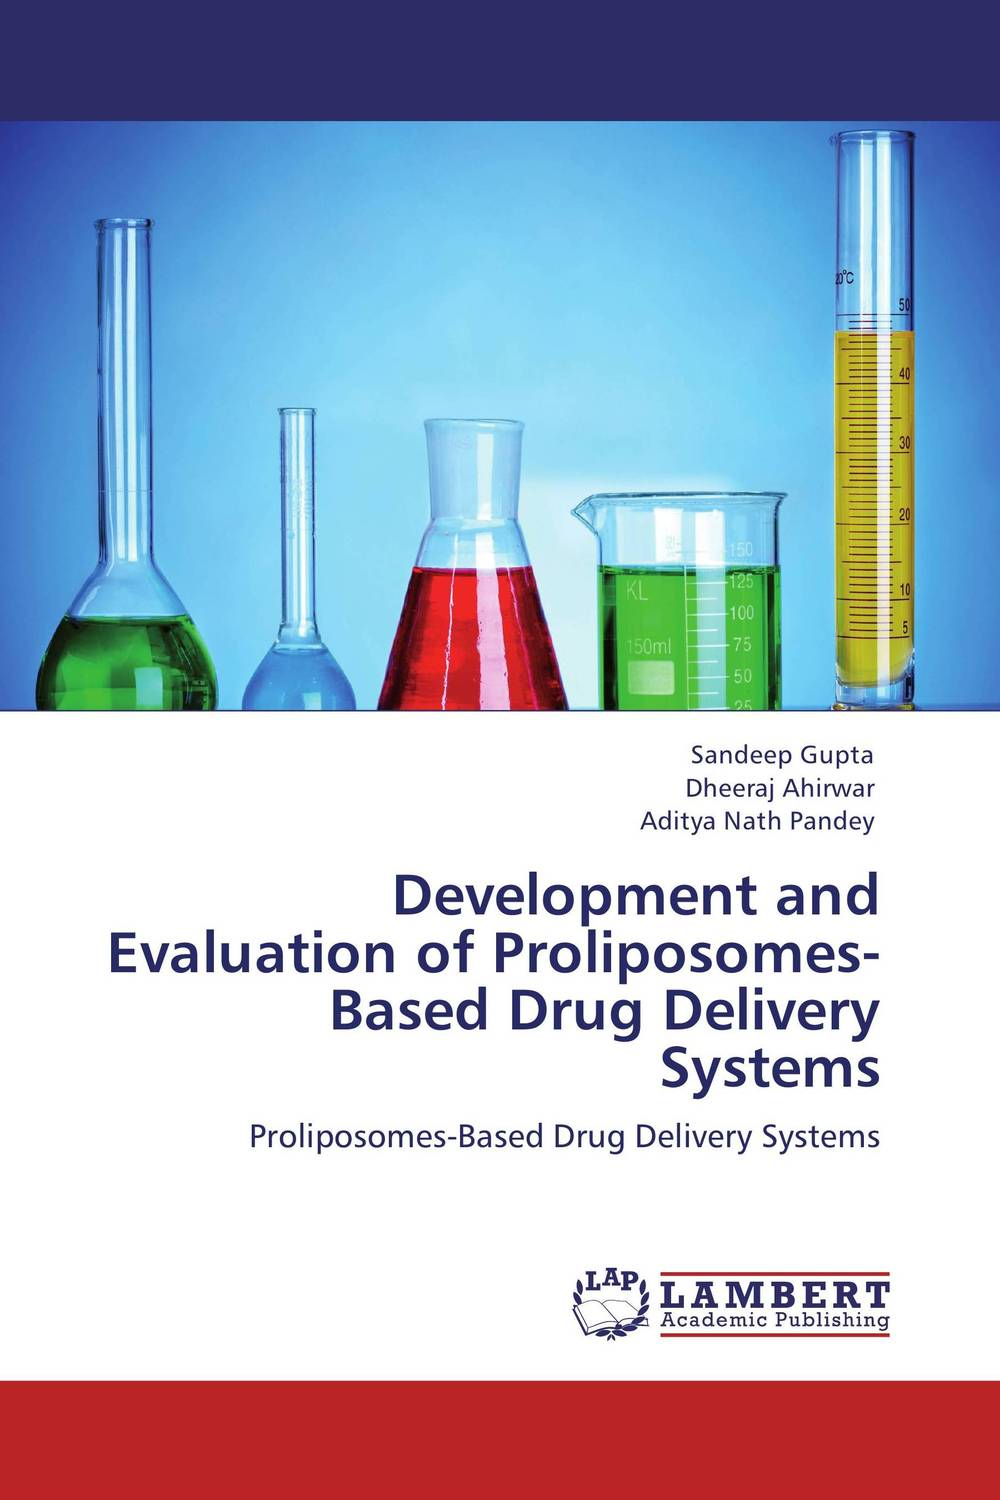 Development and Evaluation of Proliposomes-Based Drug Delivery Systems shubhini saraf a k srivastava and gyanendra singh niosome based delivery of an antitubercular drug